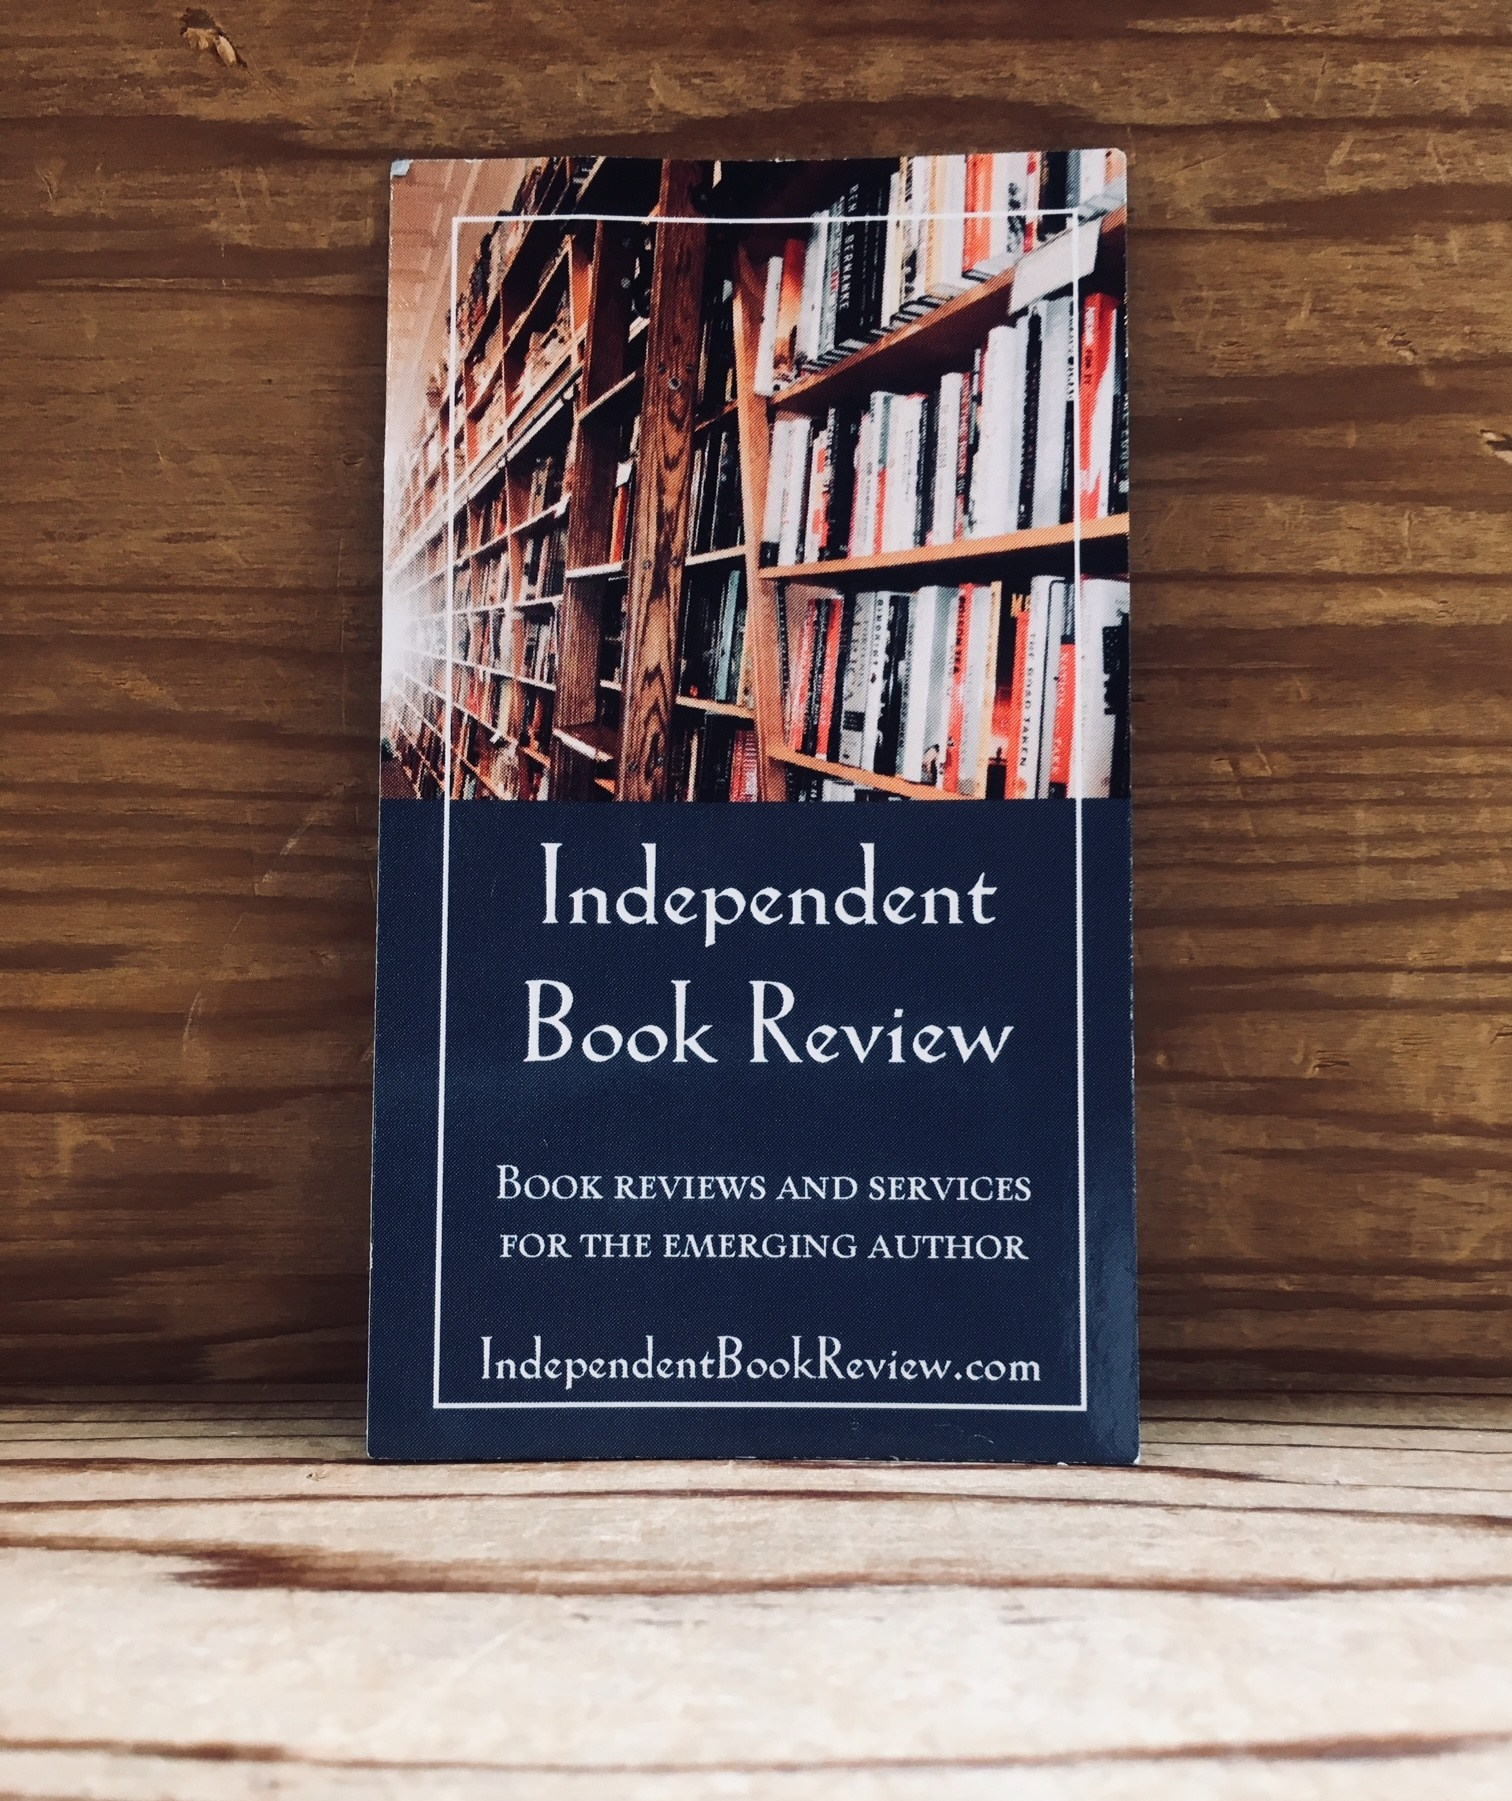 This is a picture of an Independent Book Review business card.